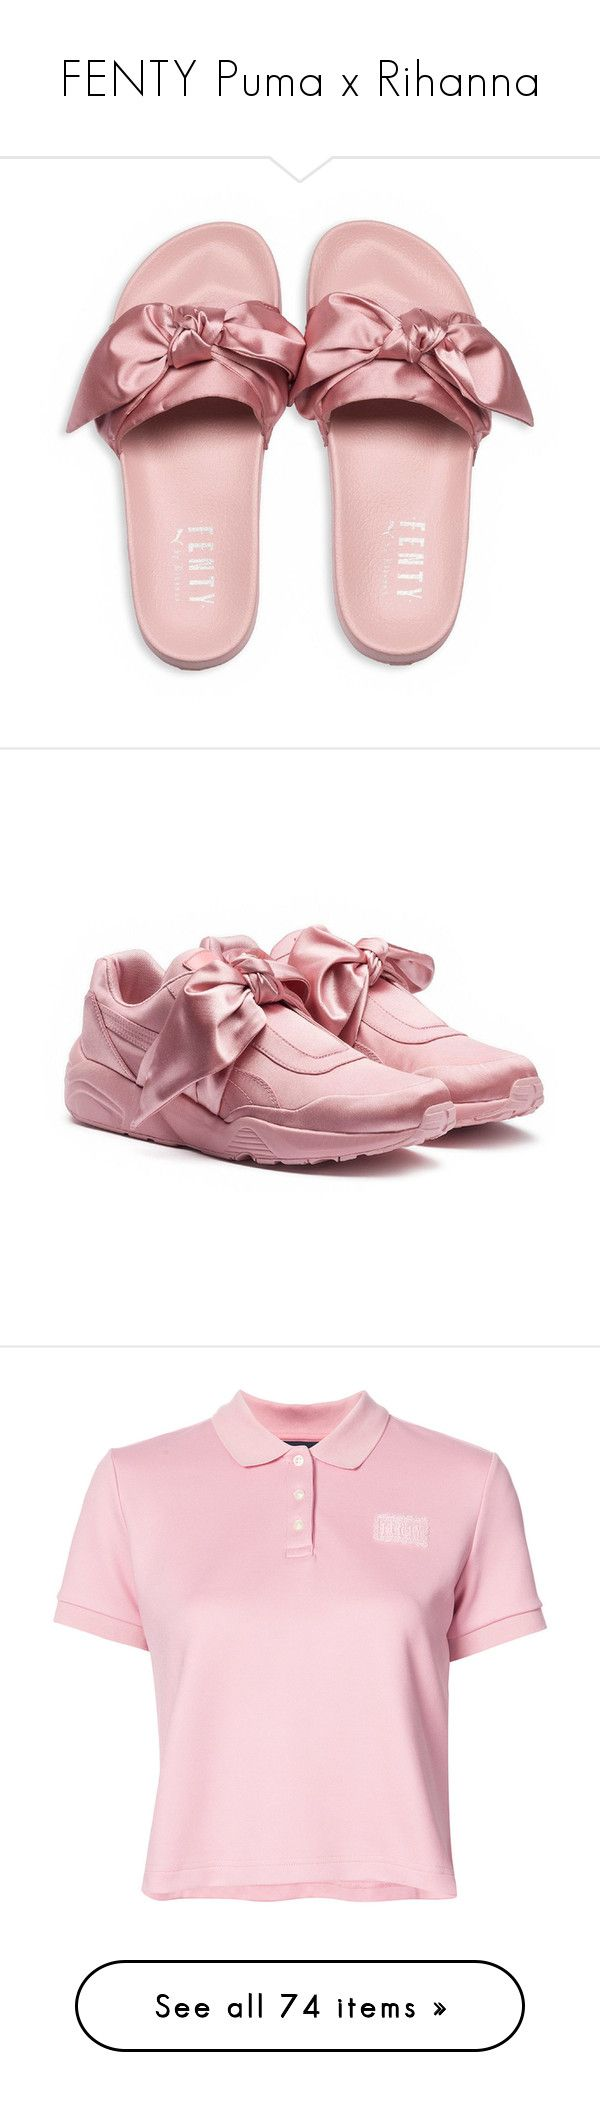 """""""FENTY Puma x Rihanna"""" by italica1992 ❤ liked on Polyvore featuring shoes, sandals, flats, puma shoes, puma sandals, puma flats, flat pump shoes, flat pumps, sneakers and puma sneakers"""